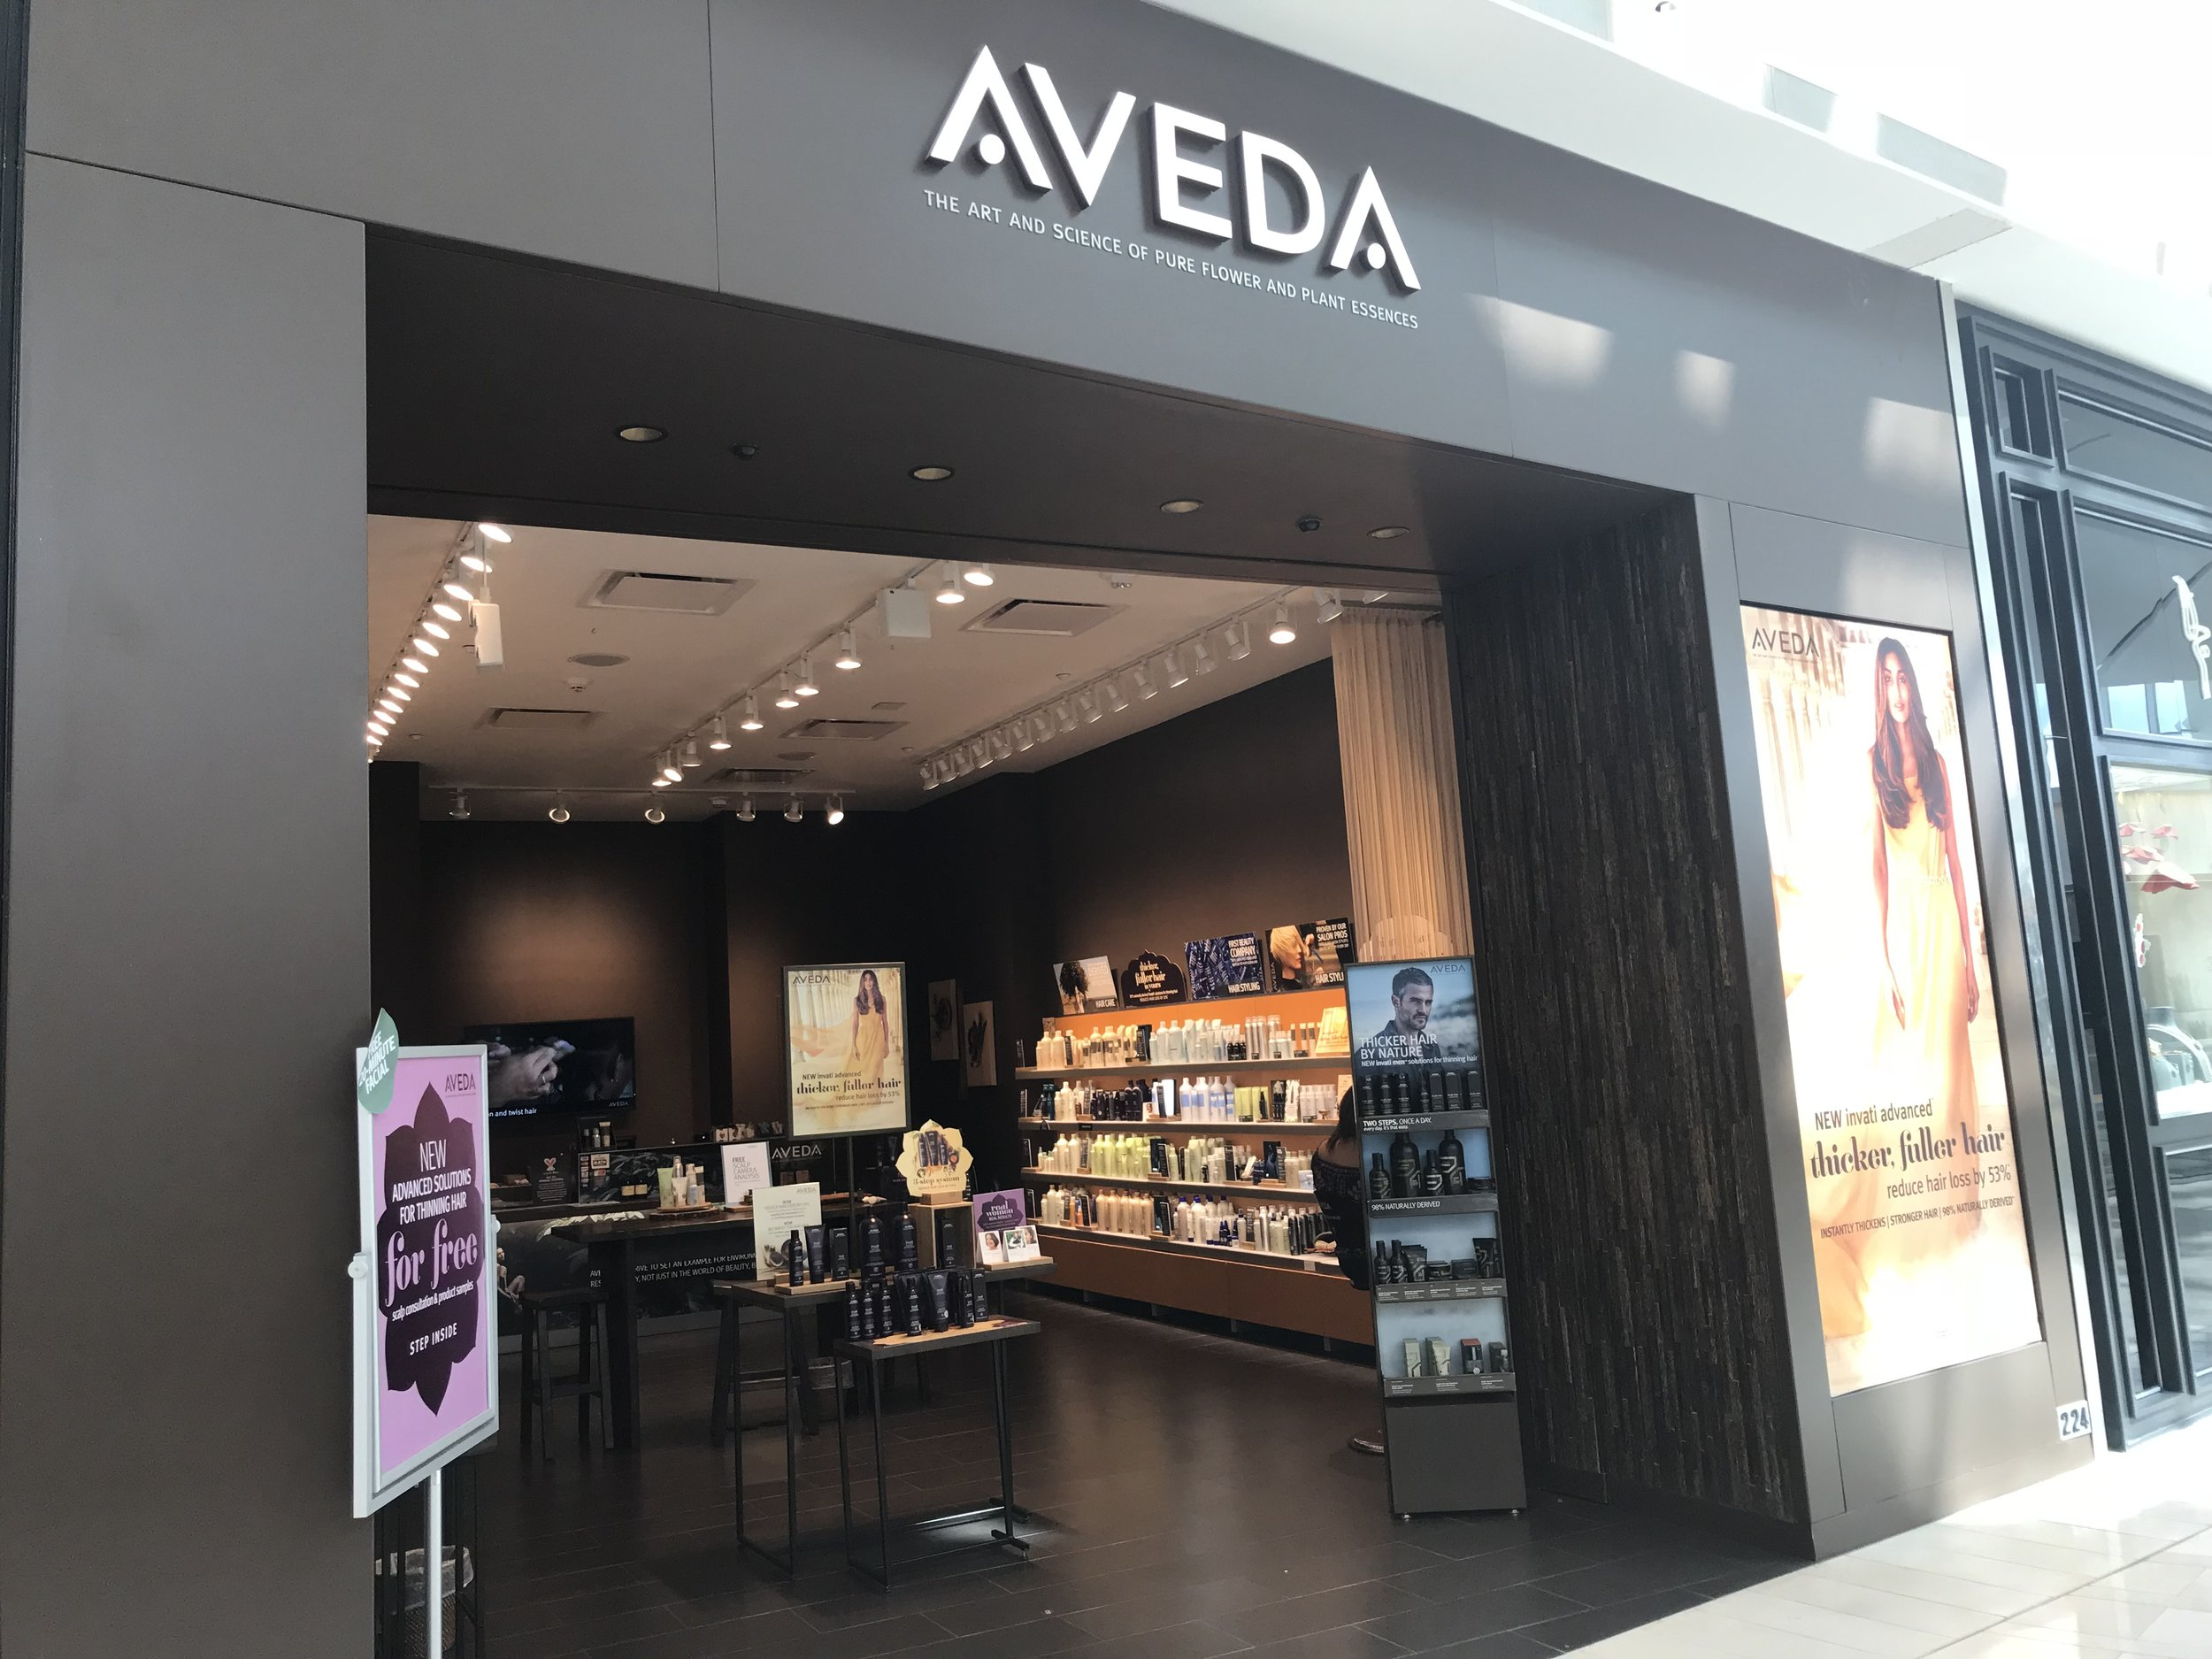 Special gift valued at $60.00, with the purchase of two Aveda products. -